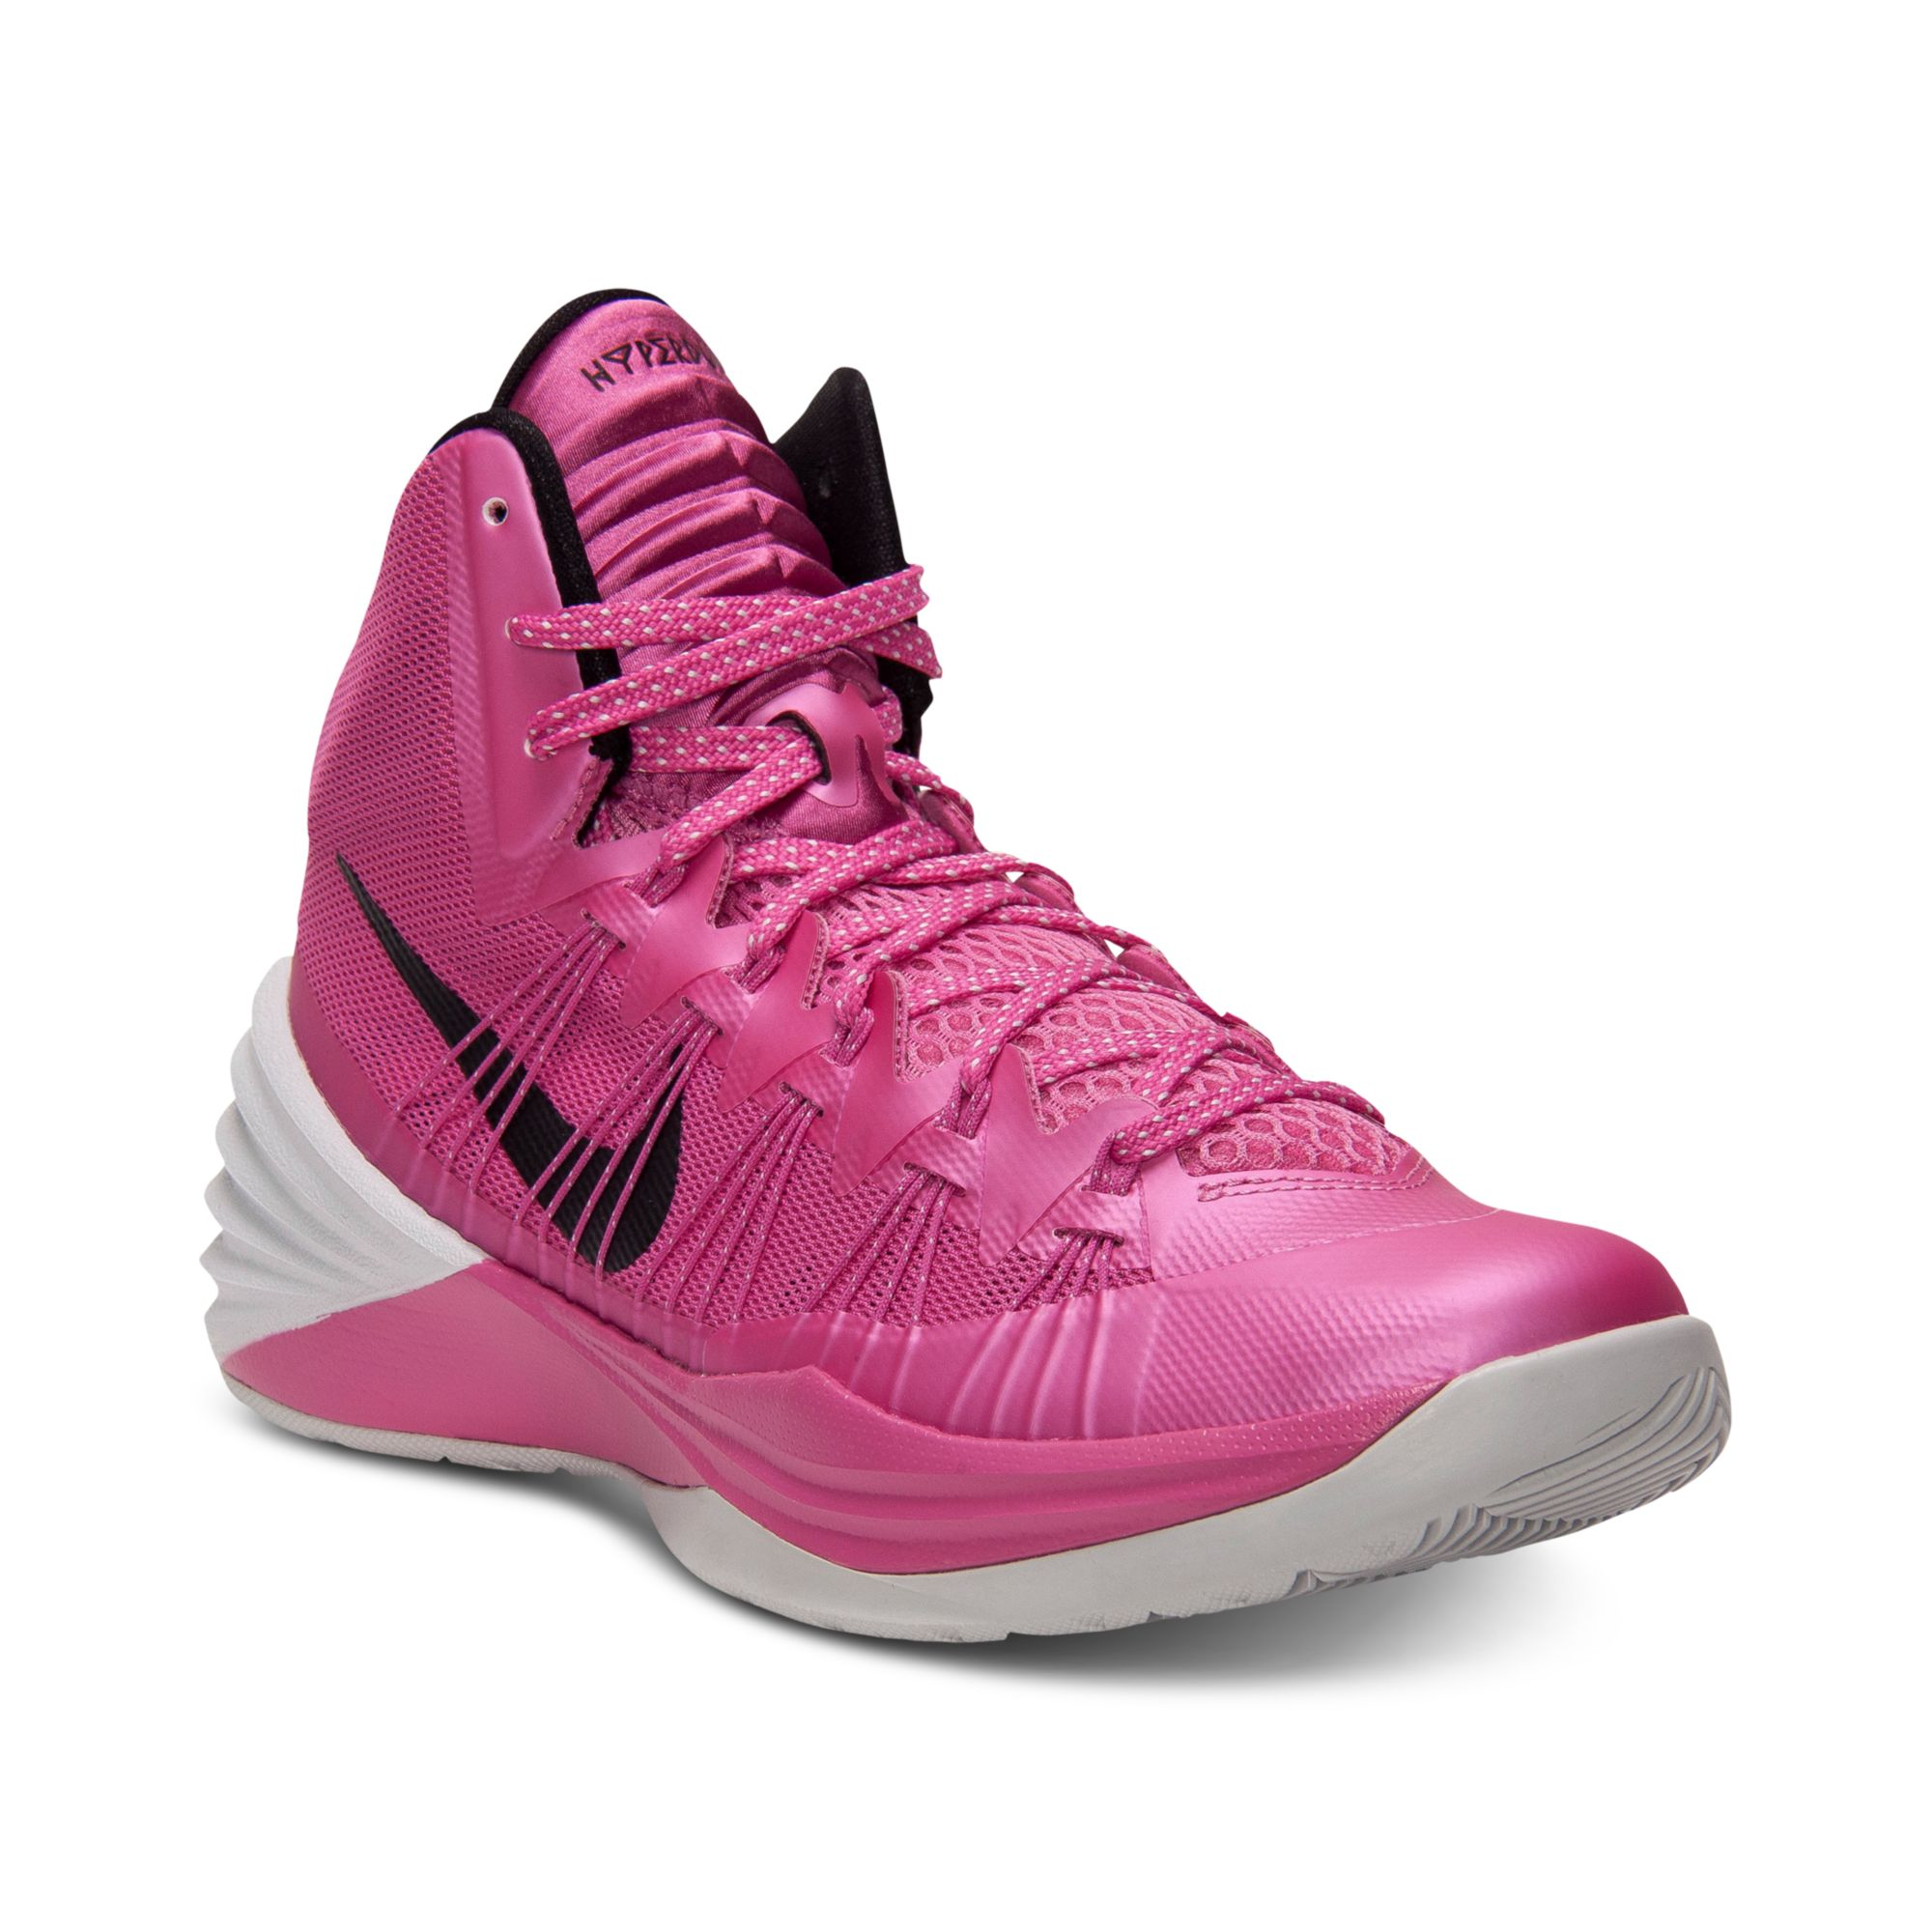 nike hyperdunk basketball sneakers in pink for pink